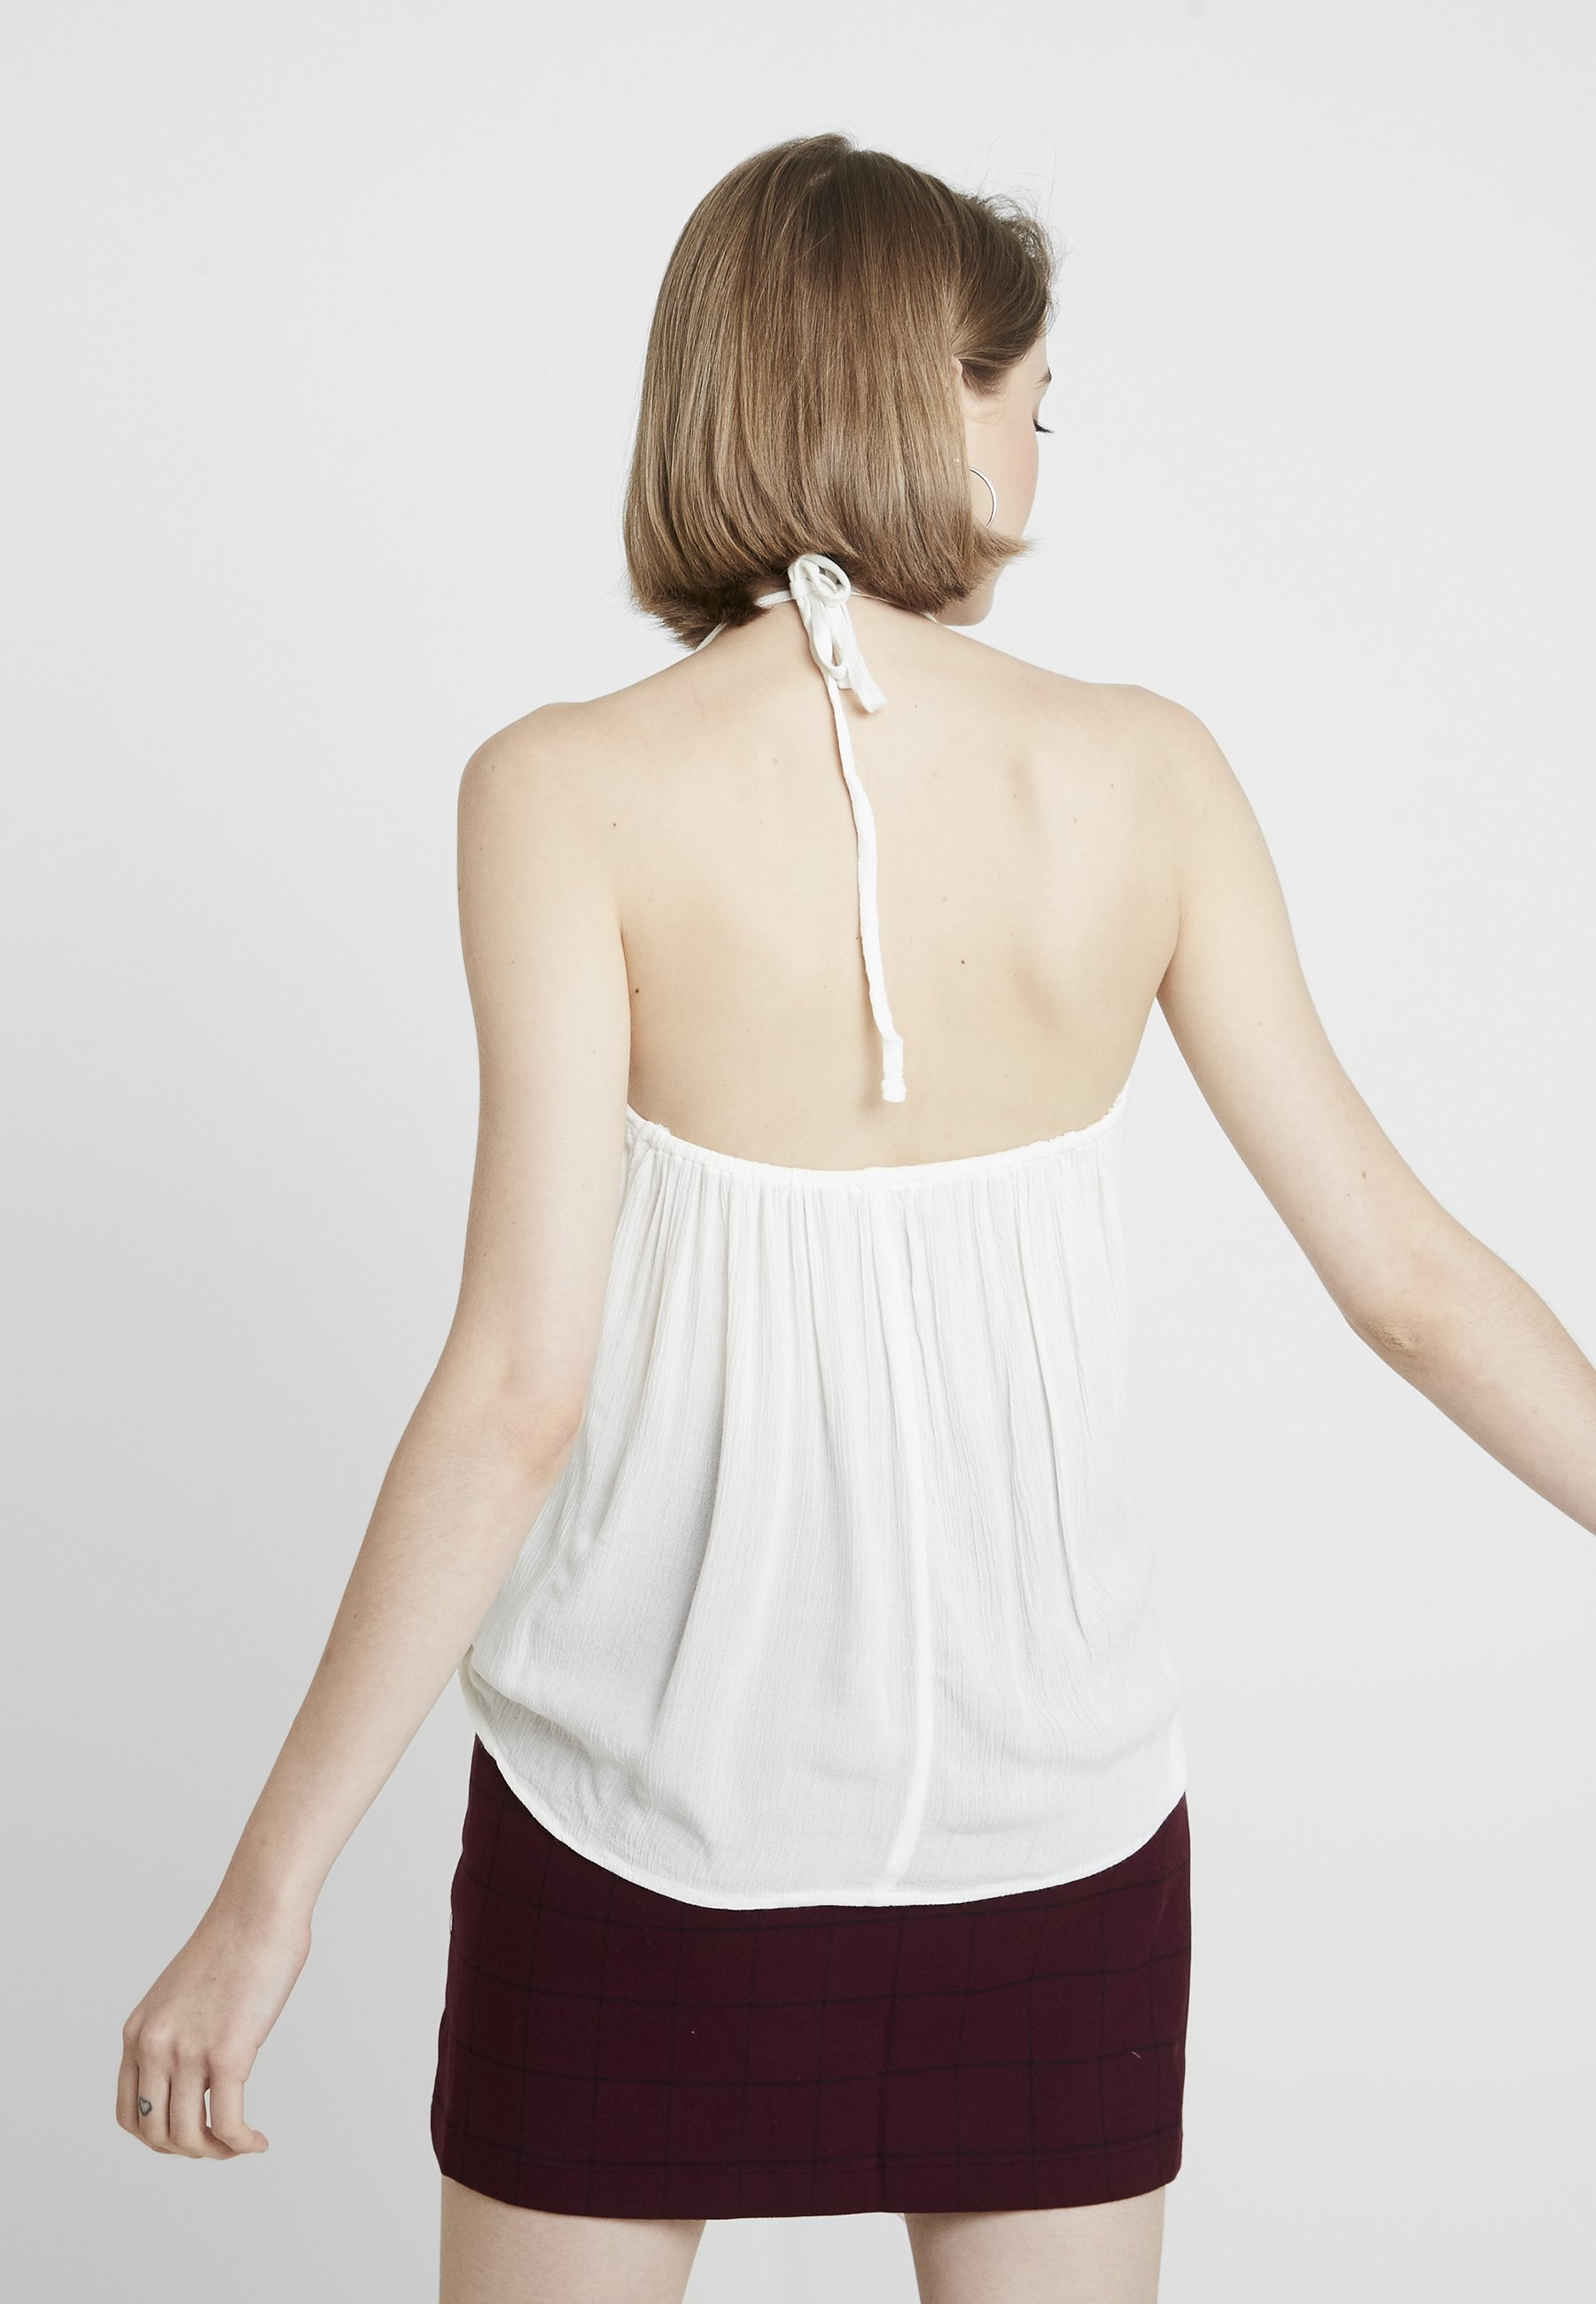 Abercrombie & Fitch Top White 9Oewi0L4